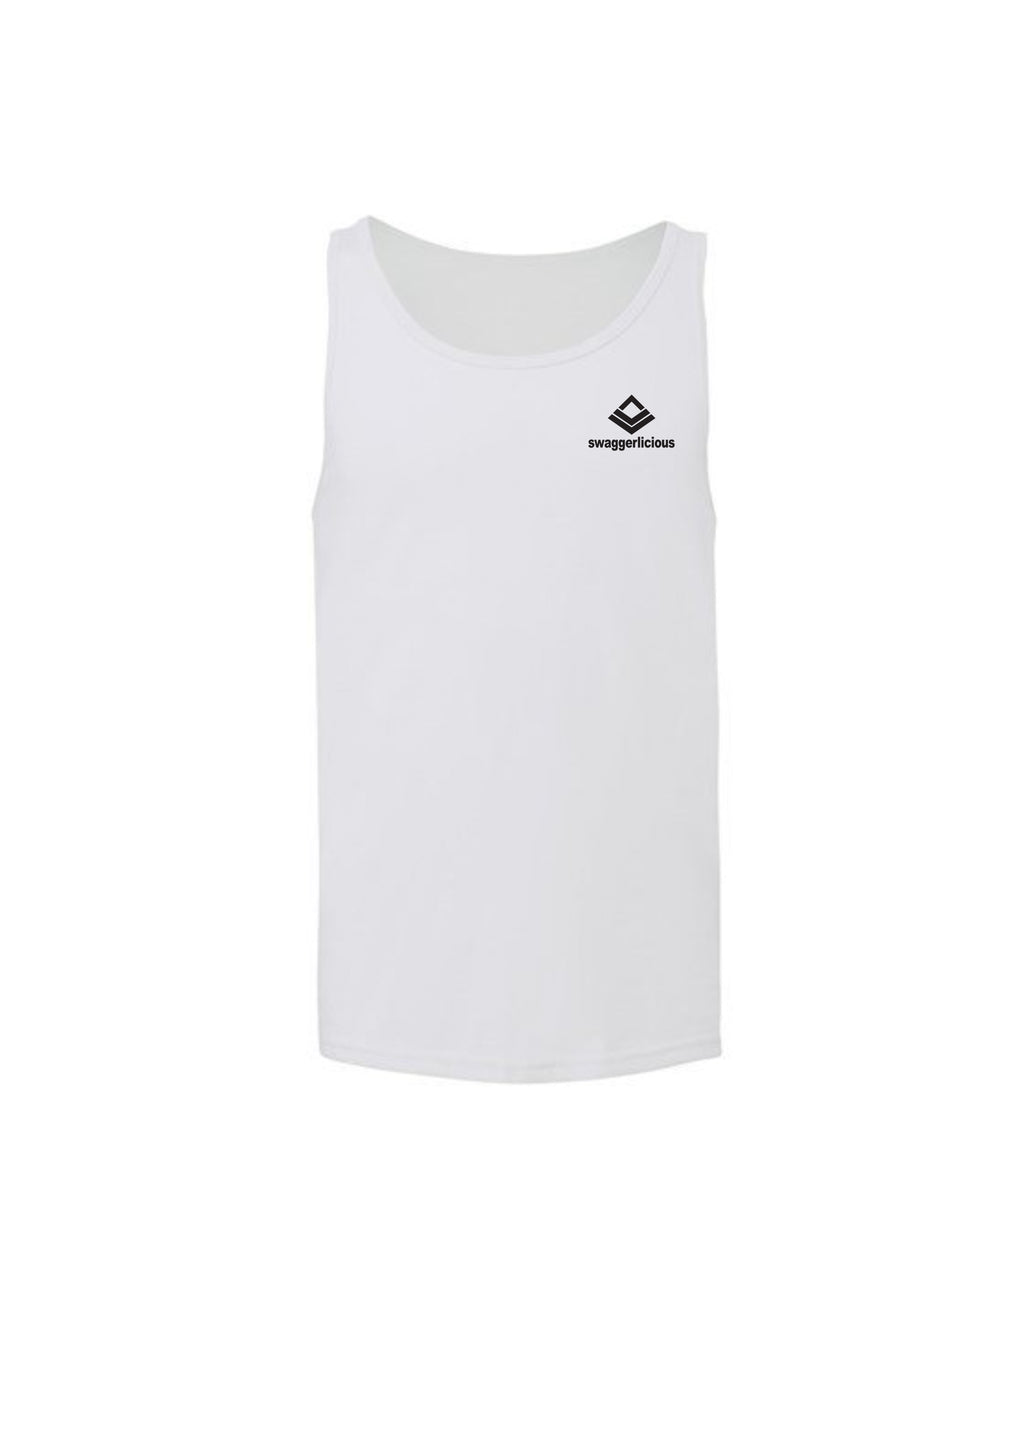 Swaggerlicious Classic White Tank with Mini Logo - swaggerlicious-clothing.com